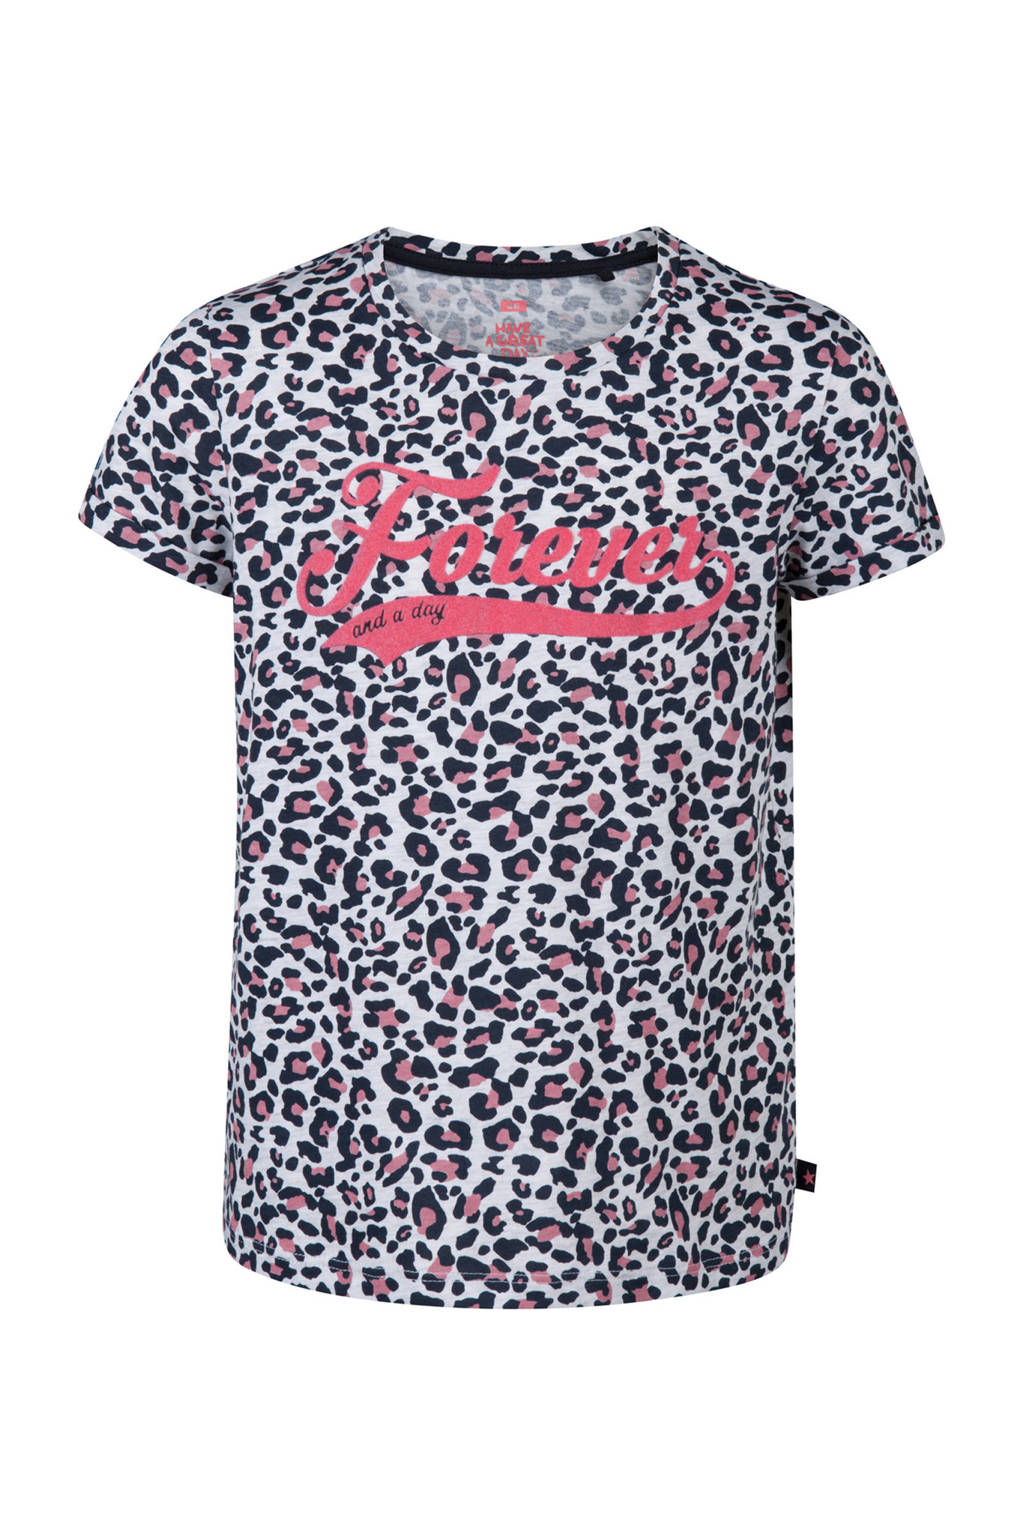 WE Fashion T-shirt met korte mouwen en panterprint, Off white/ zwart/ roze